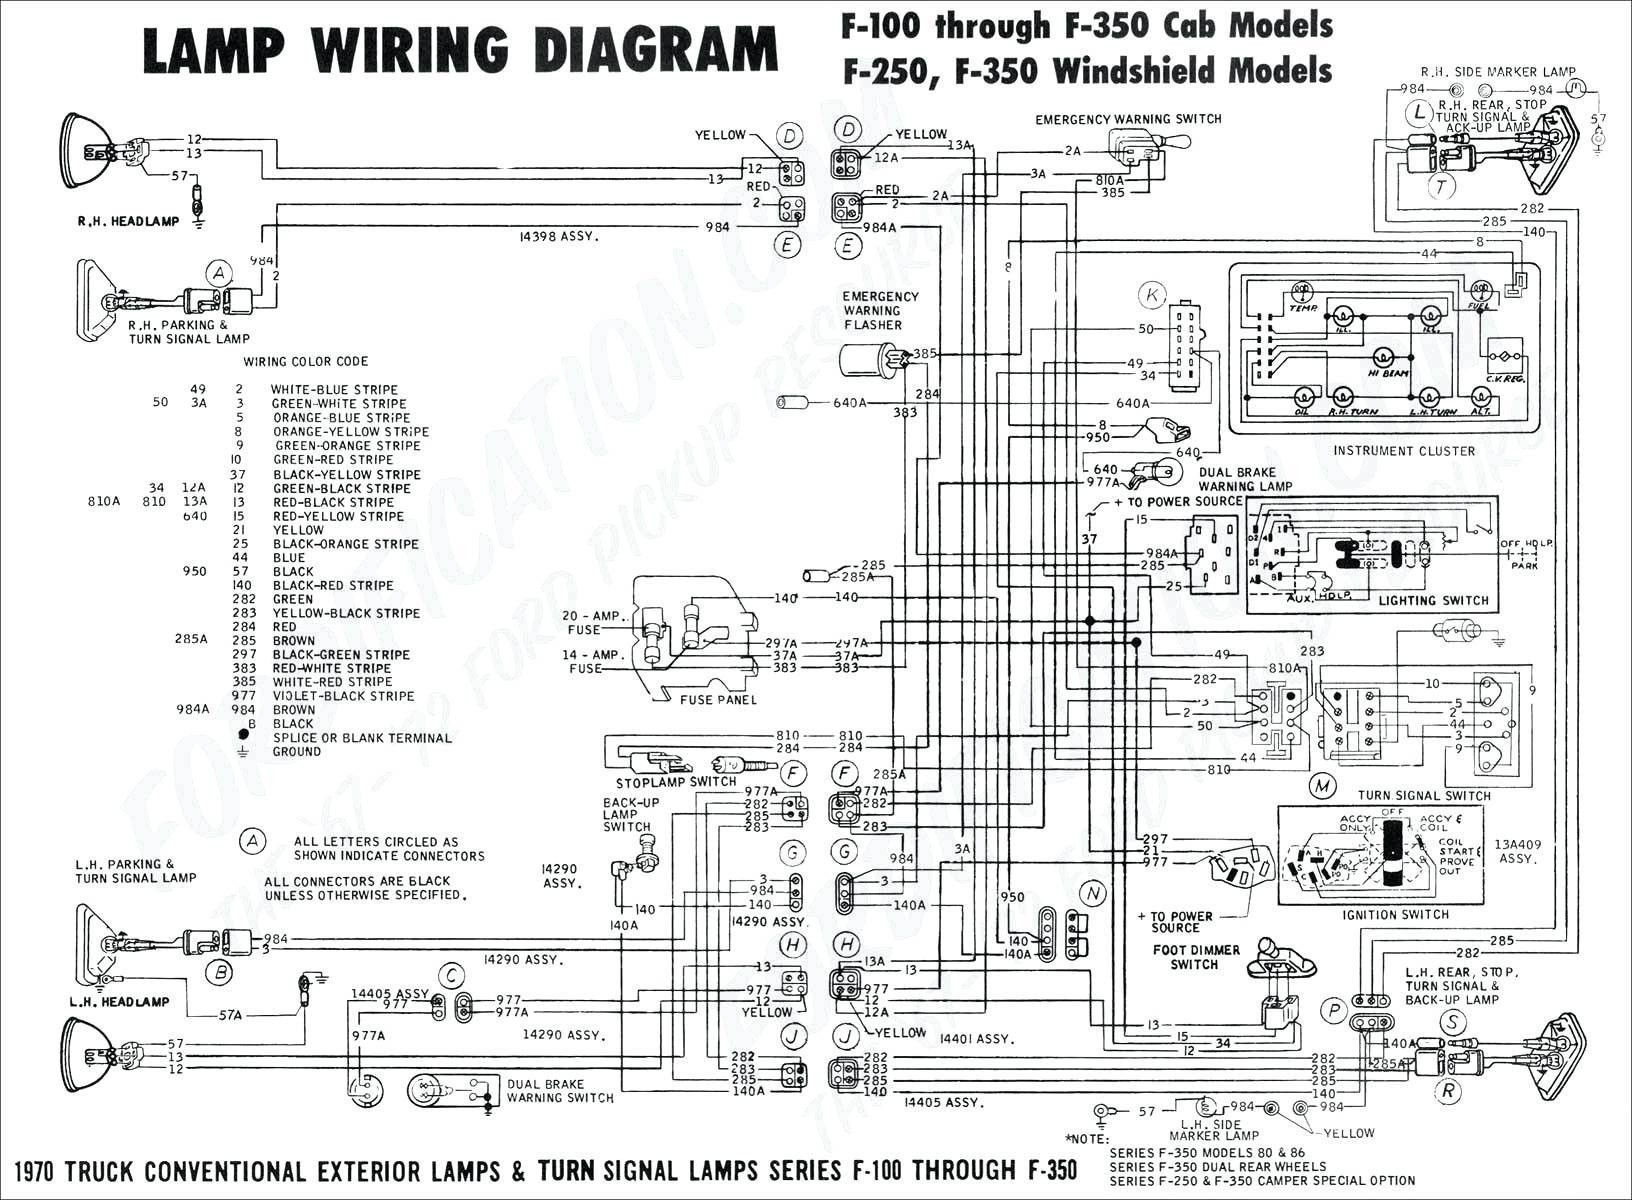 file name  2001 bas tracker wiring diagram